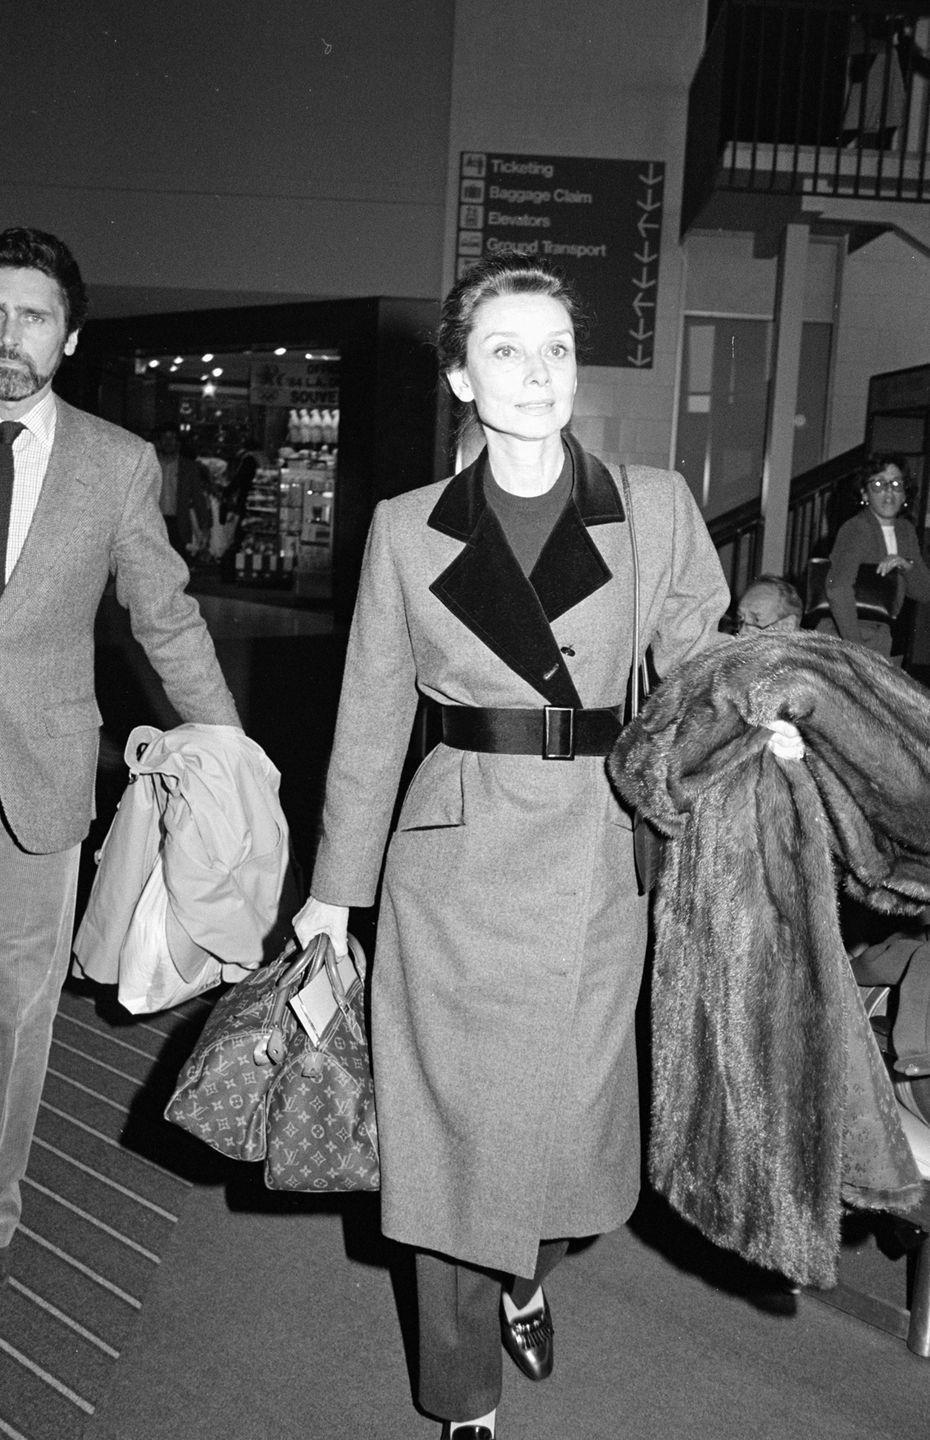 <p>A Louis Vuitton bag is often the go-to airport carry-on for celebrities, but it was particularly chic when Audrey Hepburn did it in '84. </p>